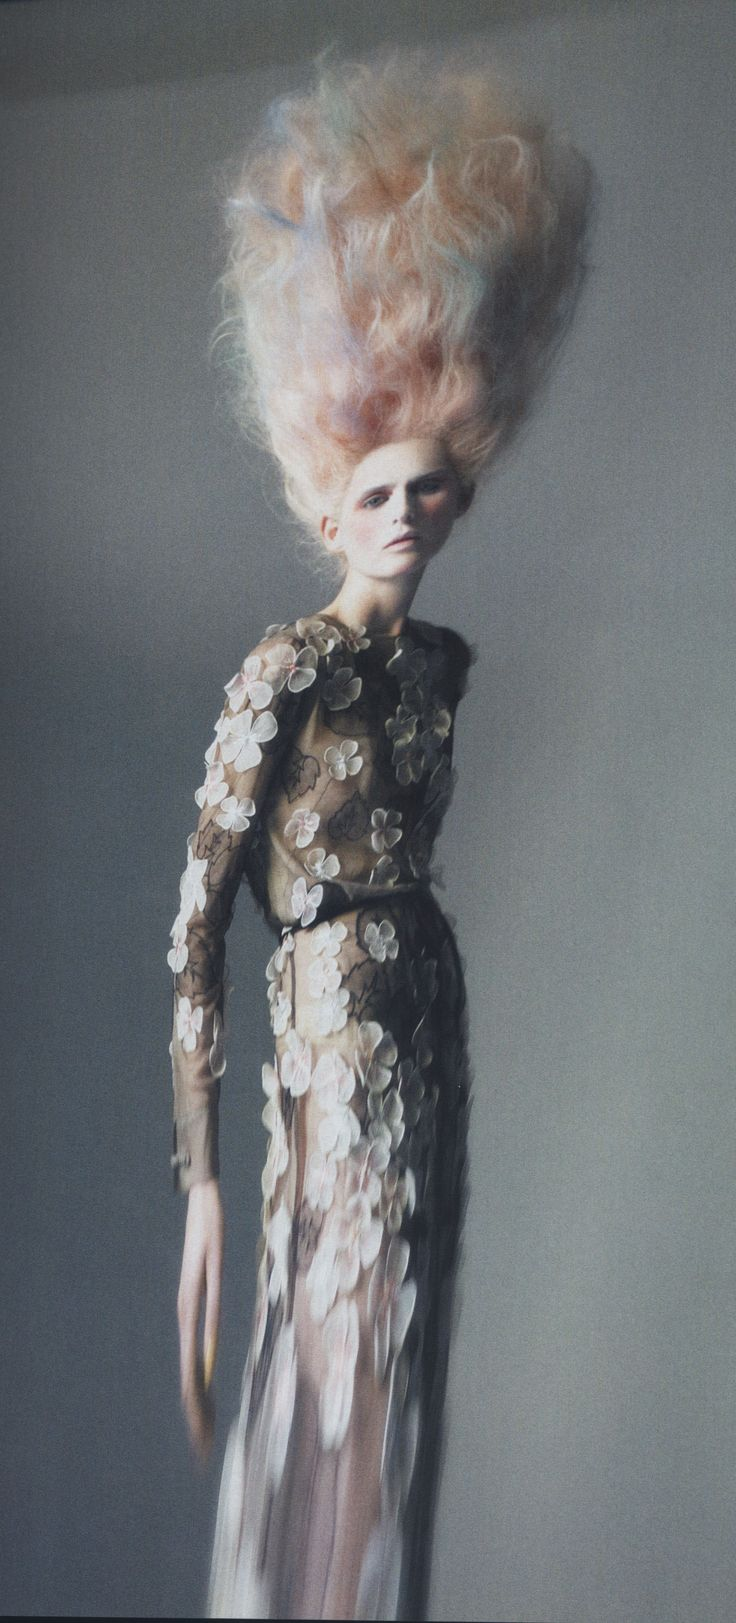 Vogue 2011 - Chanel  Photography: Paolo Roversi